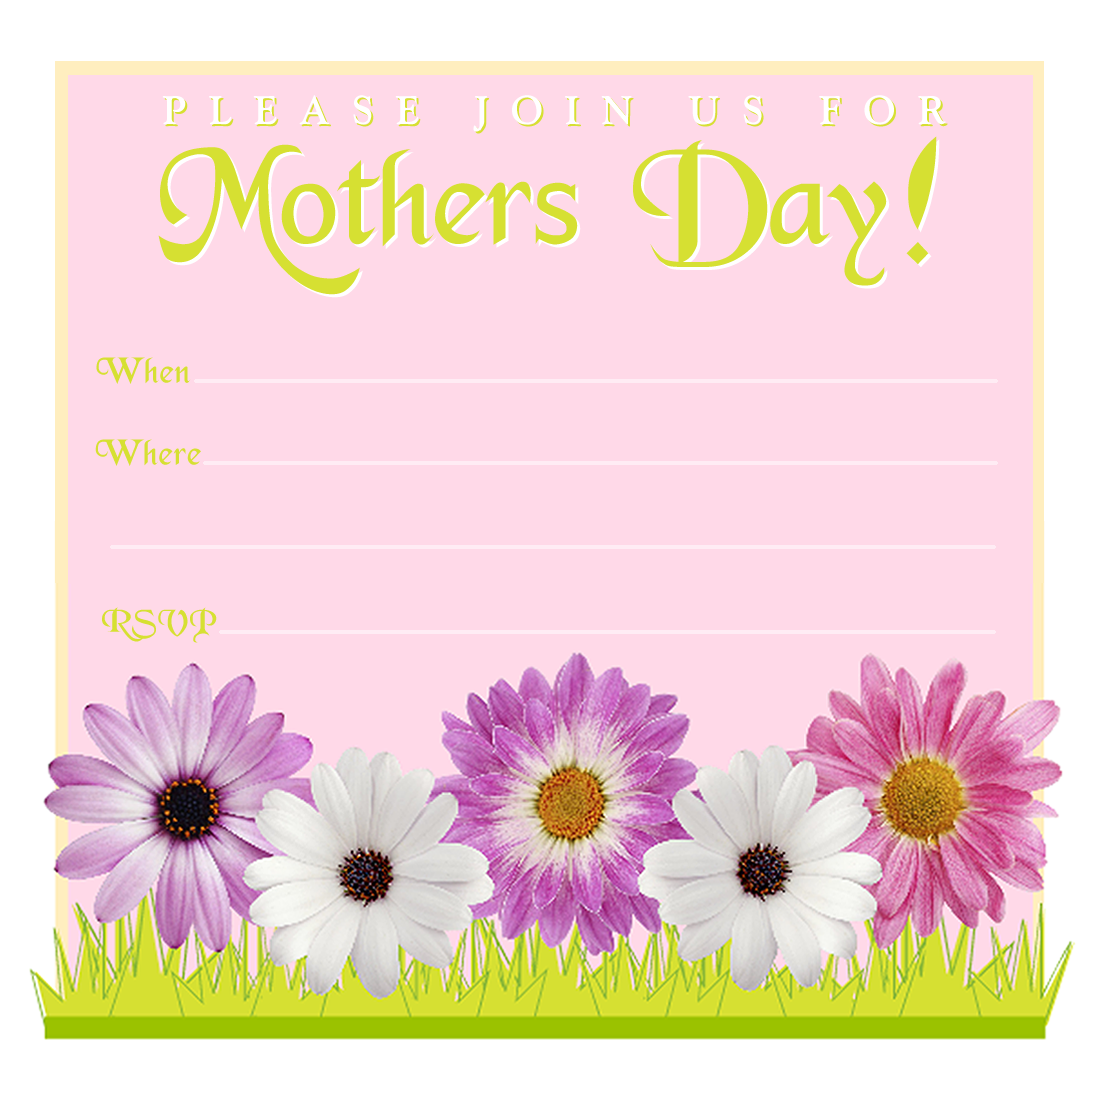 Free Mothers Day Invitations Cheerful Daisies Png 1100 1100 Brunch Invitations Free Printable Party Invitations Lunch Invitation